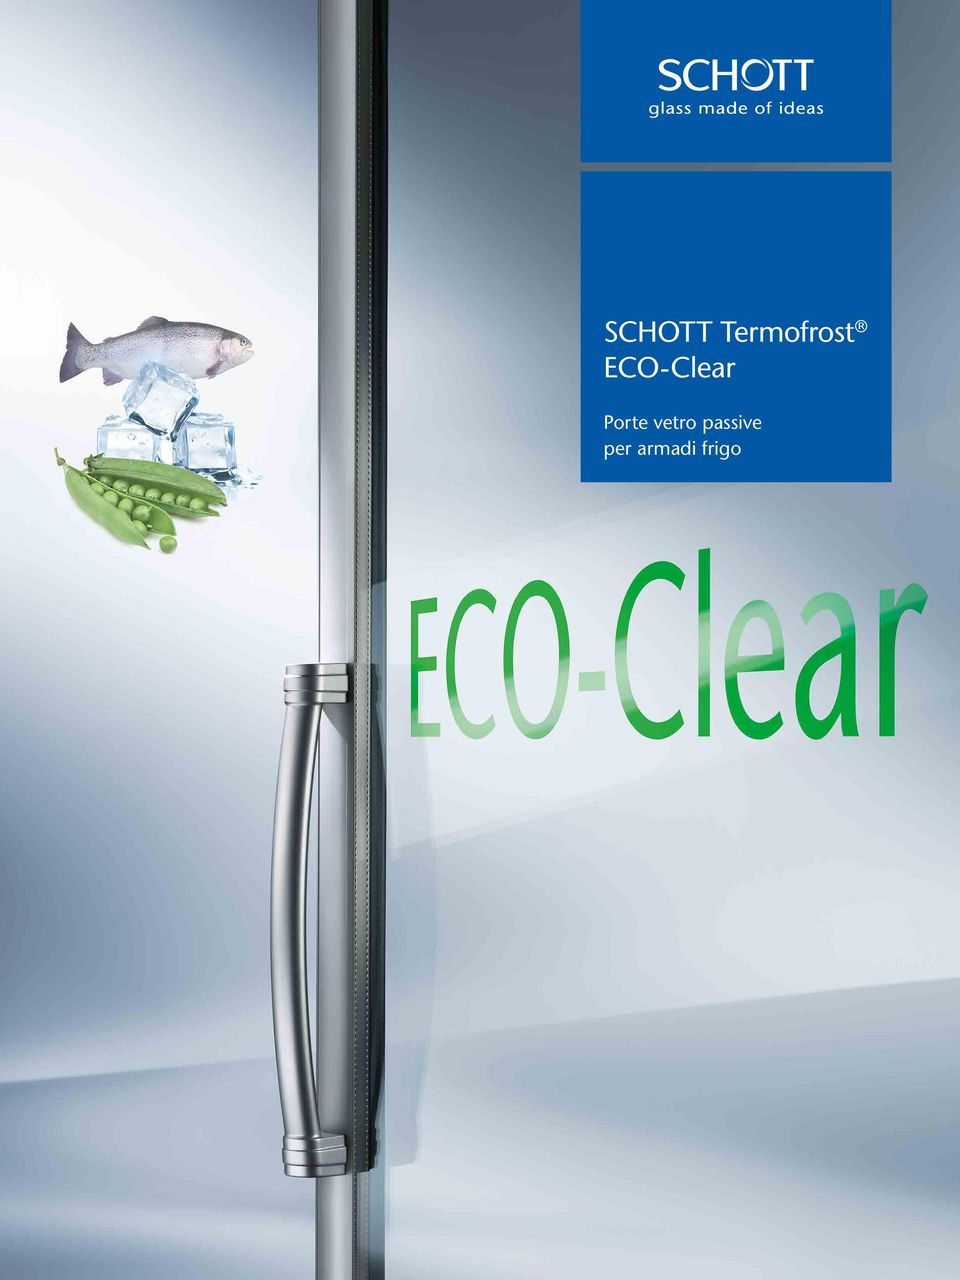 ECO-Clear Porte